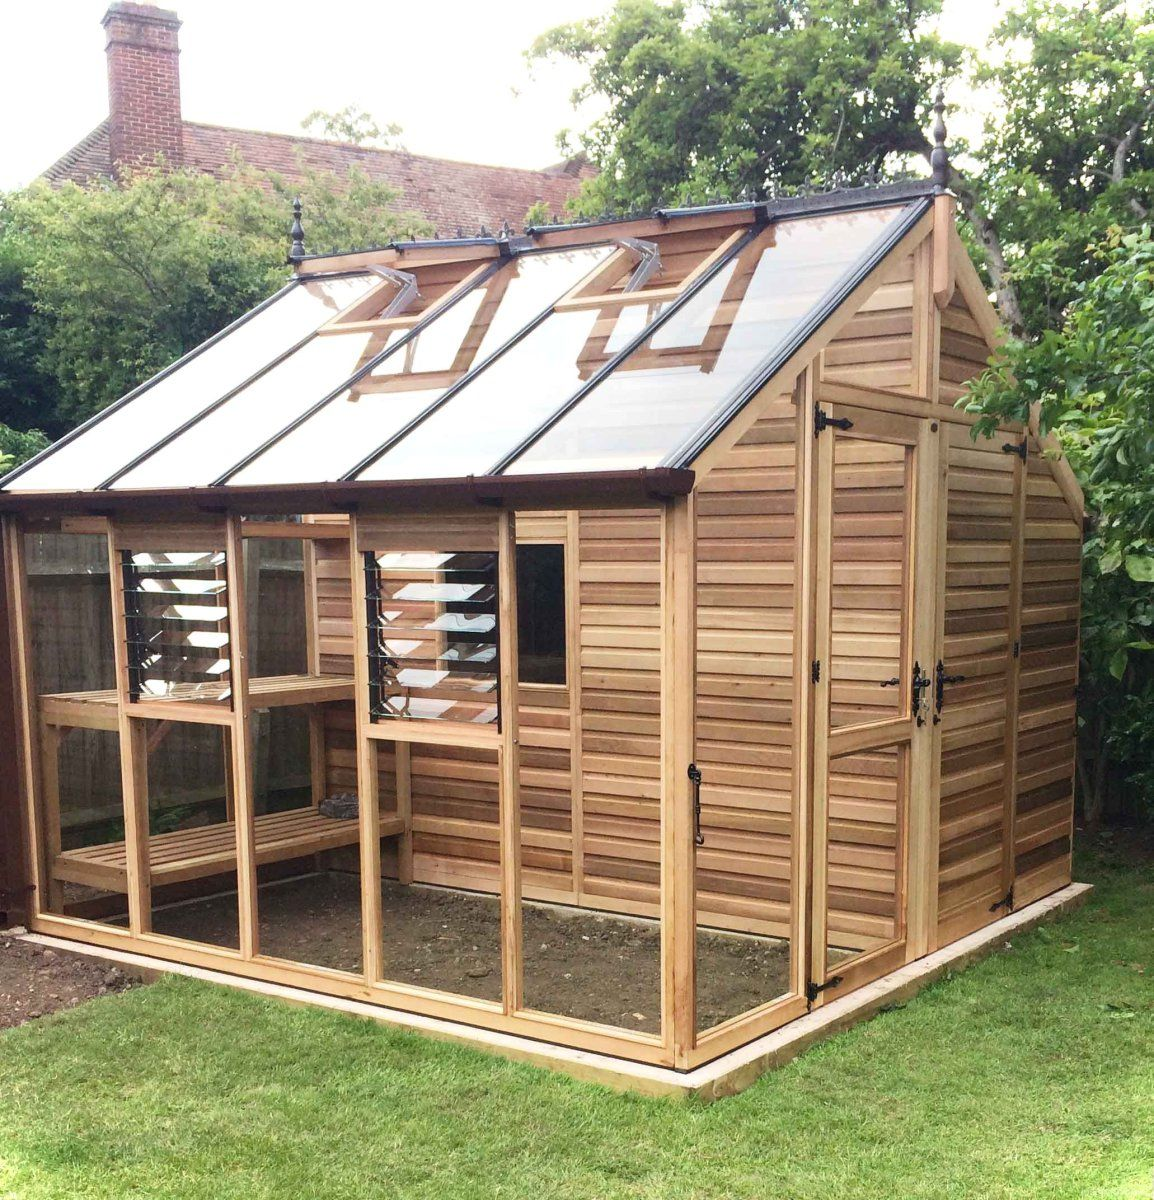 30 Affordable Garden Shed Plans Ideas For You (With Images